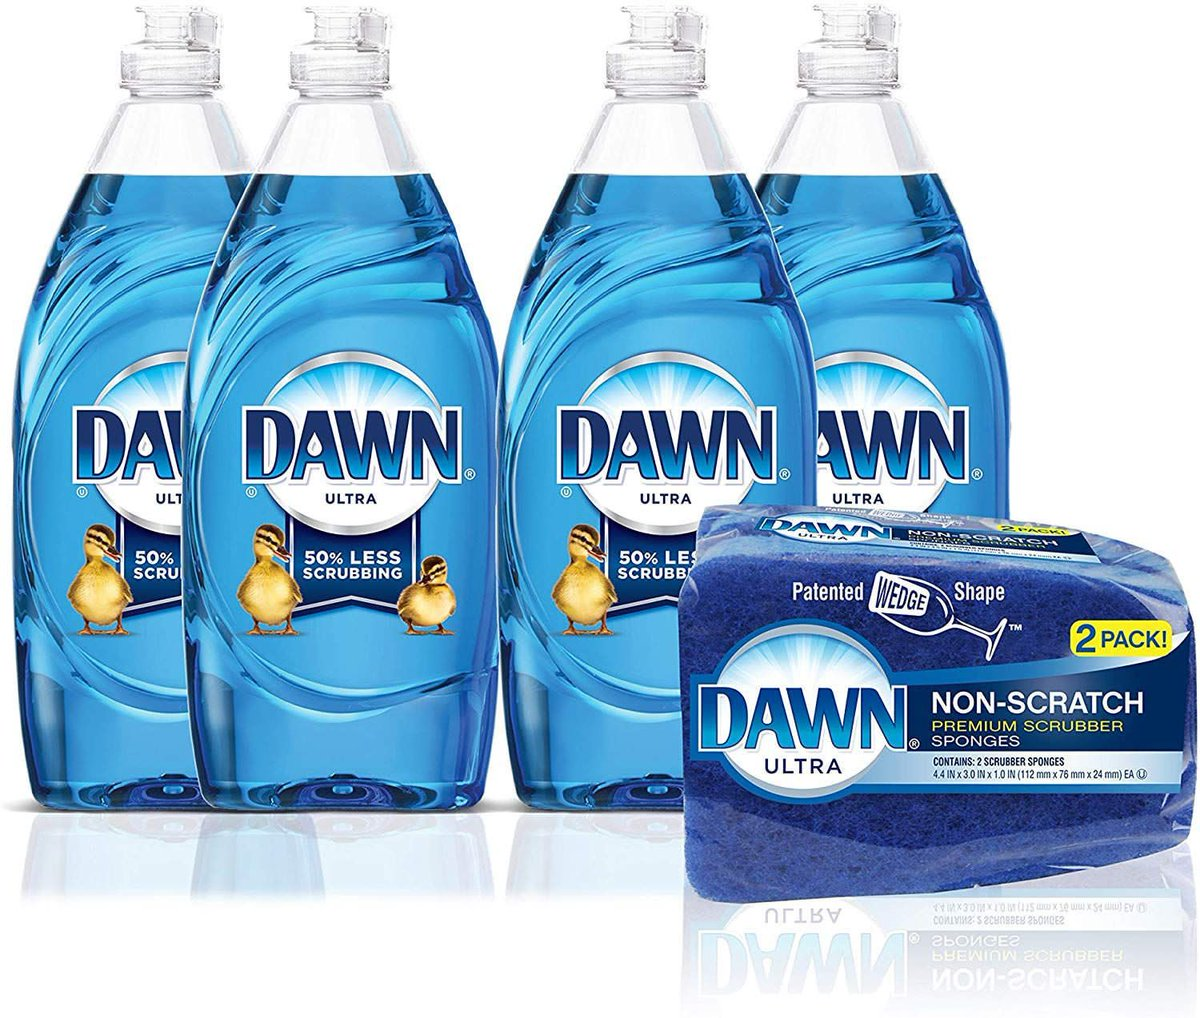 Dawn Ultra Dishwashing Liquid Dish Soap (4x19oz) + Non-Scratch Sponge (2ct)   $8.49 with Free Prime Shipping    #steals #deals #stealsanddeals